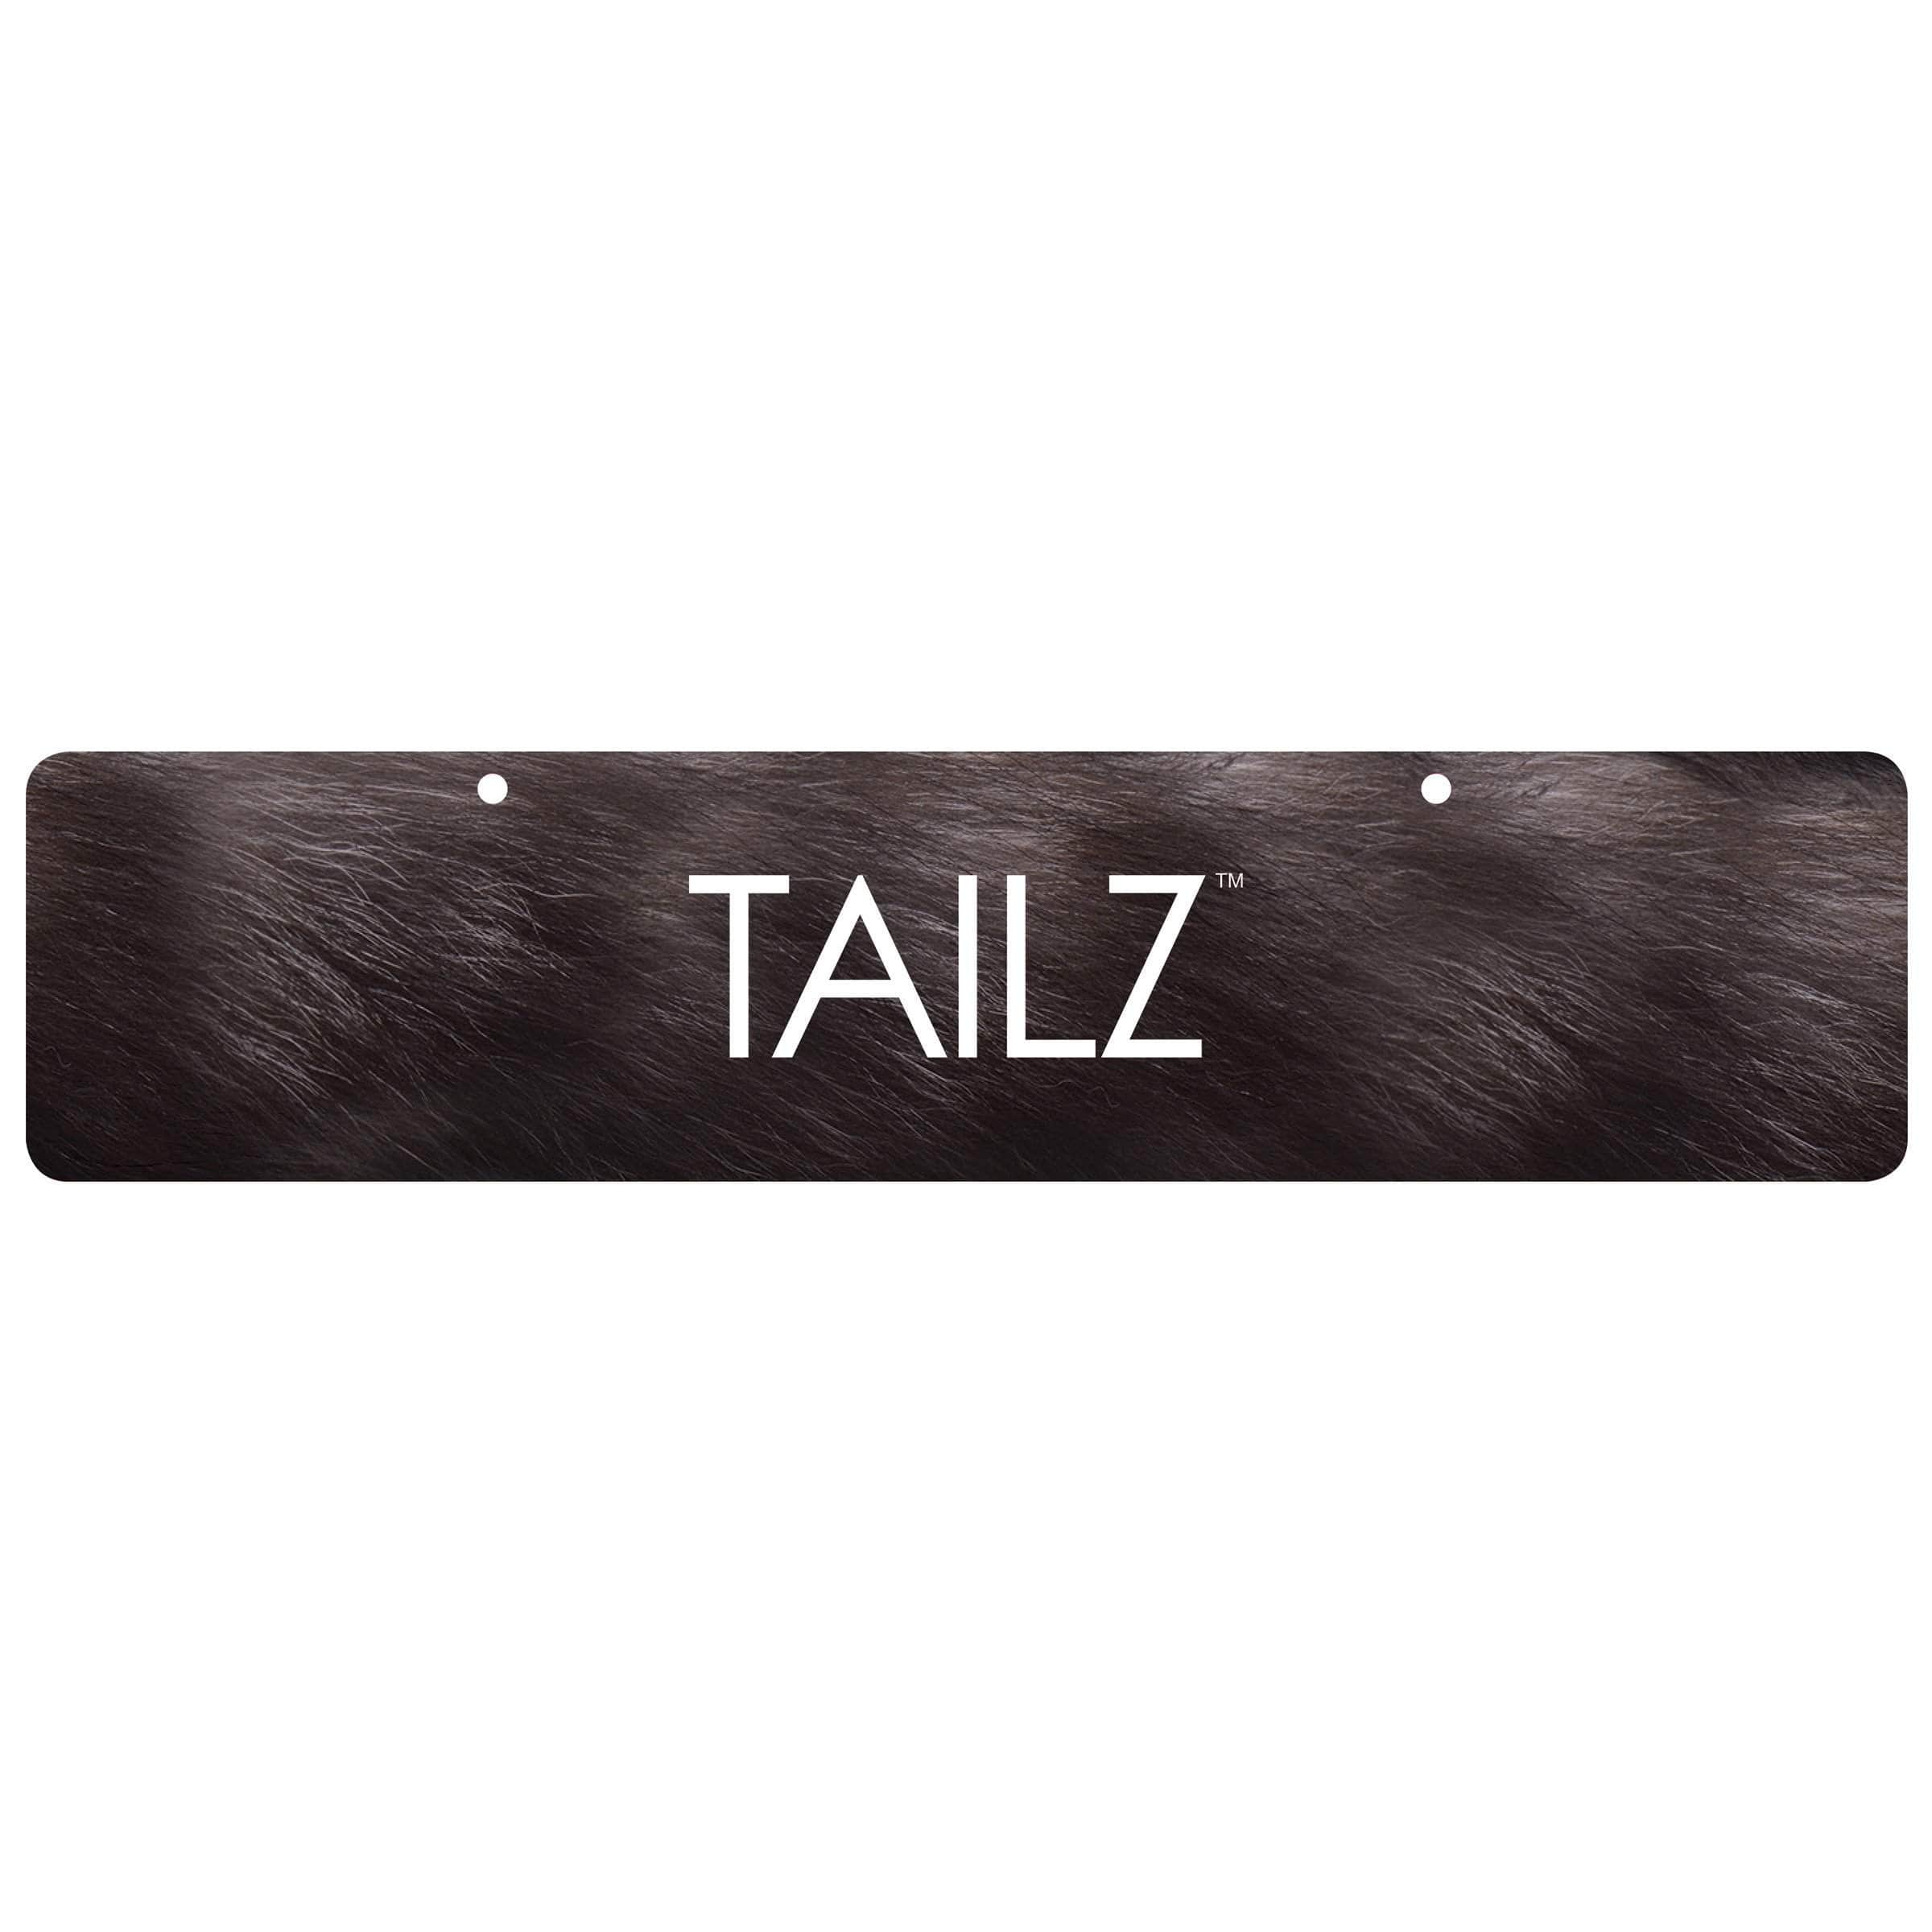 Tailz Display Sign